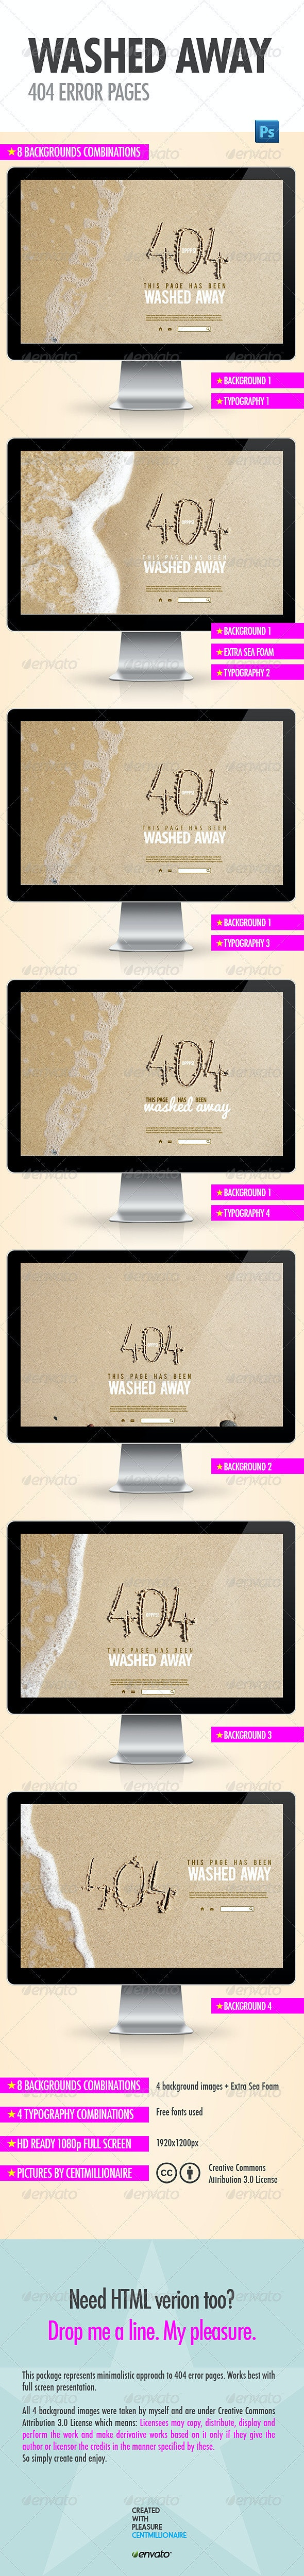 Washed Away 404 Error Pages